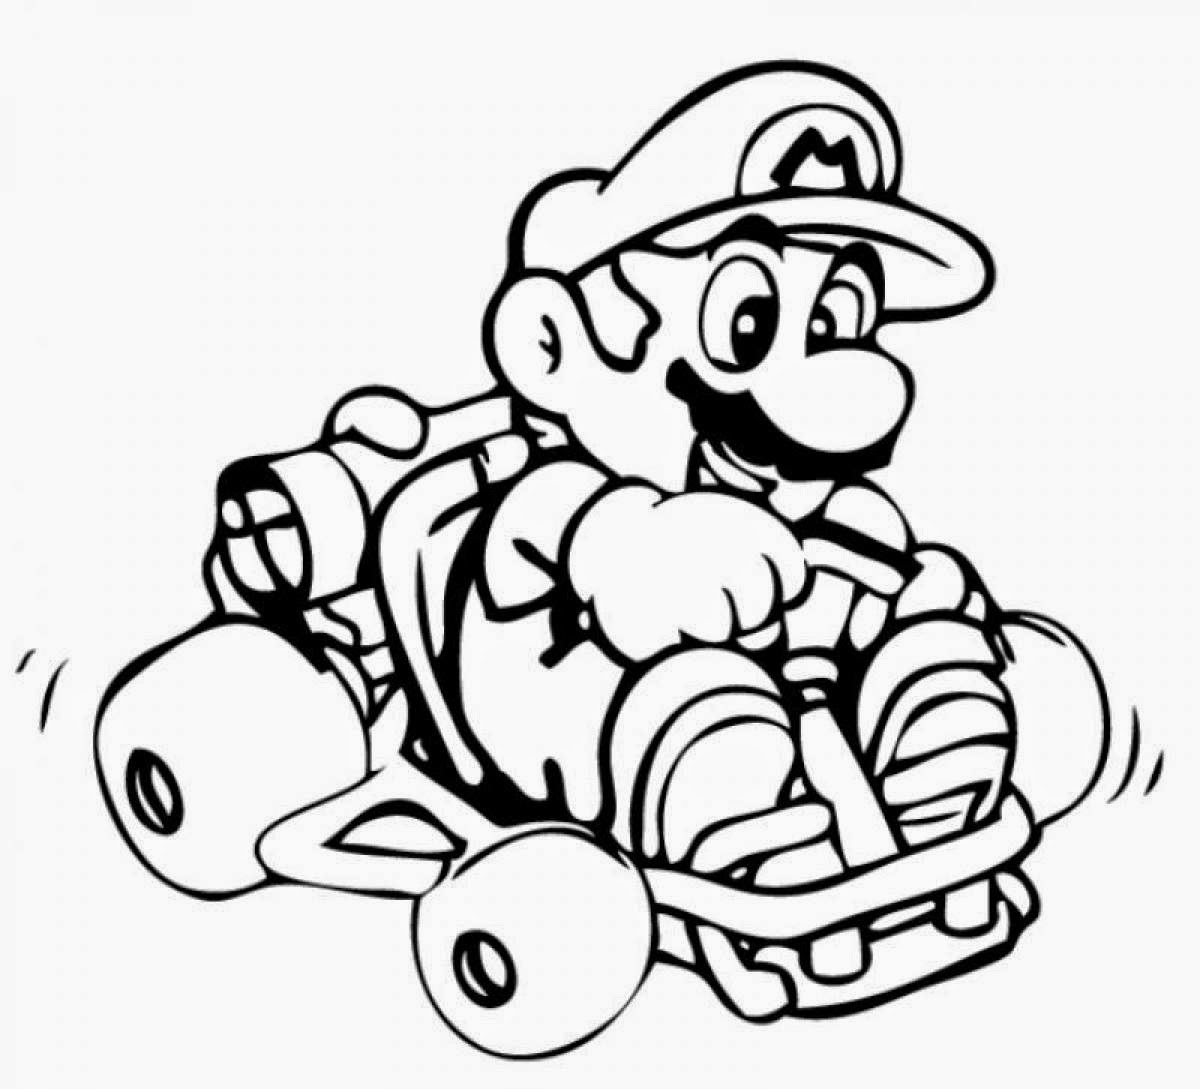 coloring mario new super mario coloring pages download and print for free coloring mario